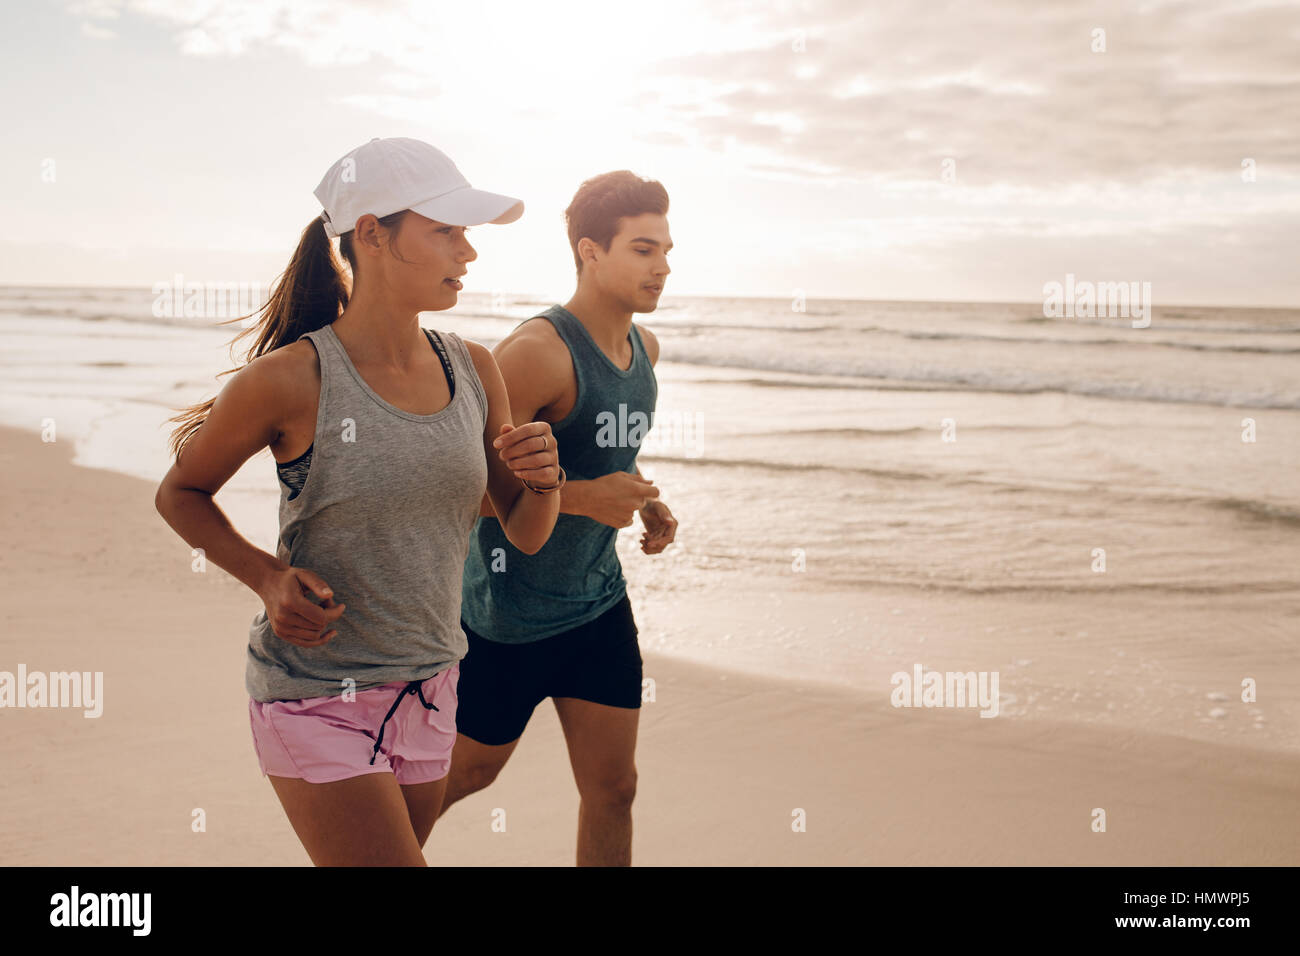 Young couple running together on the beach. Outdoor shot of young couple on morning run. - Stock Image